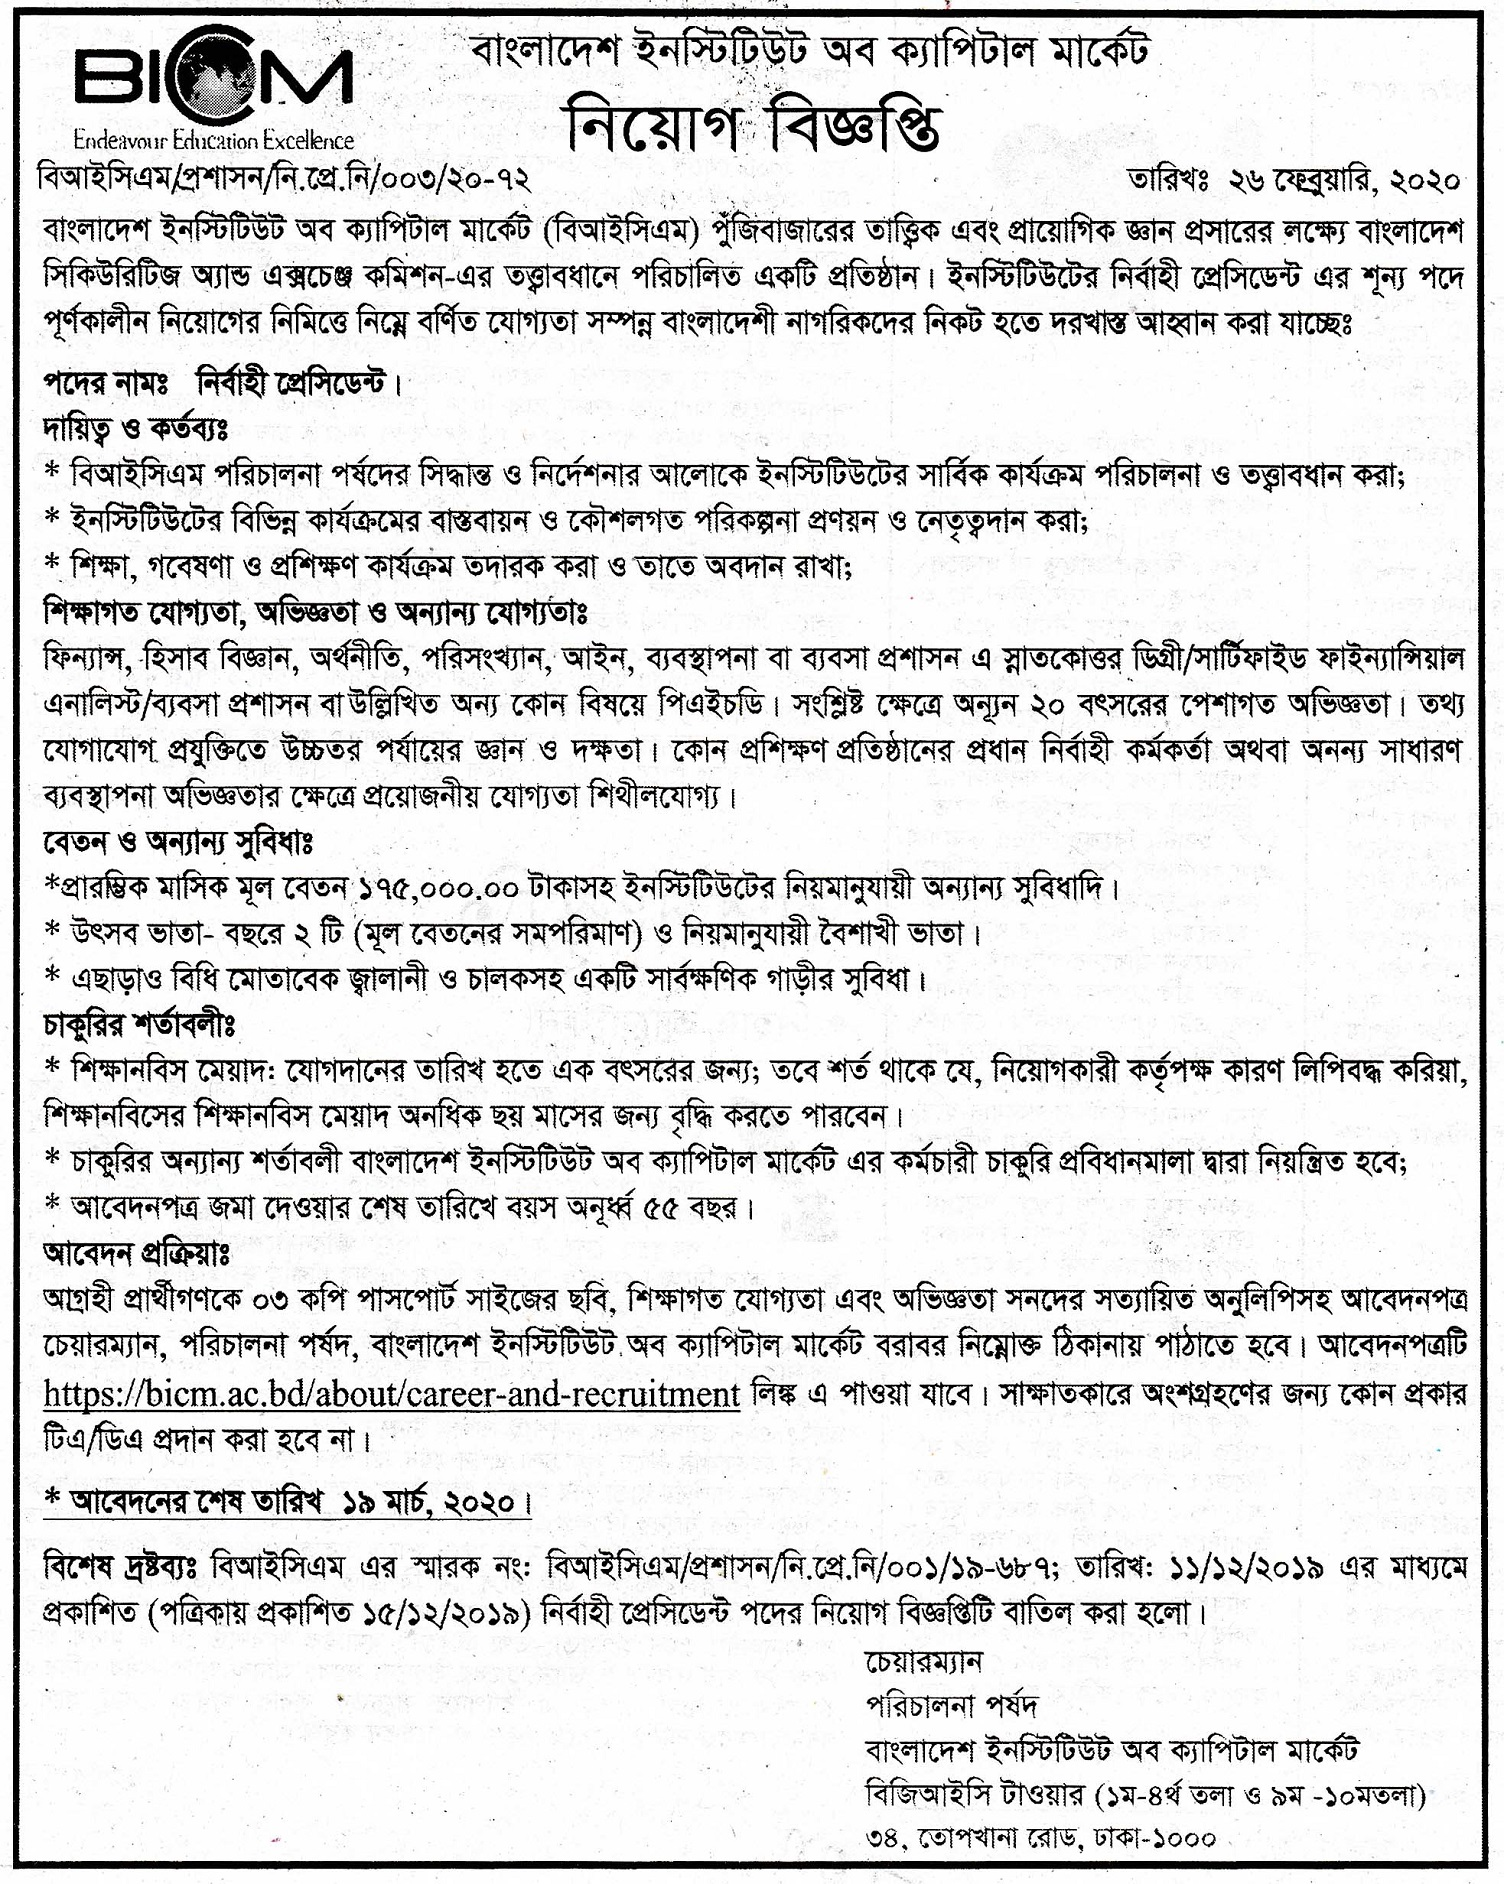 Bangladesh Institute of Capital Market Job Circular 2020